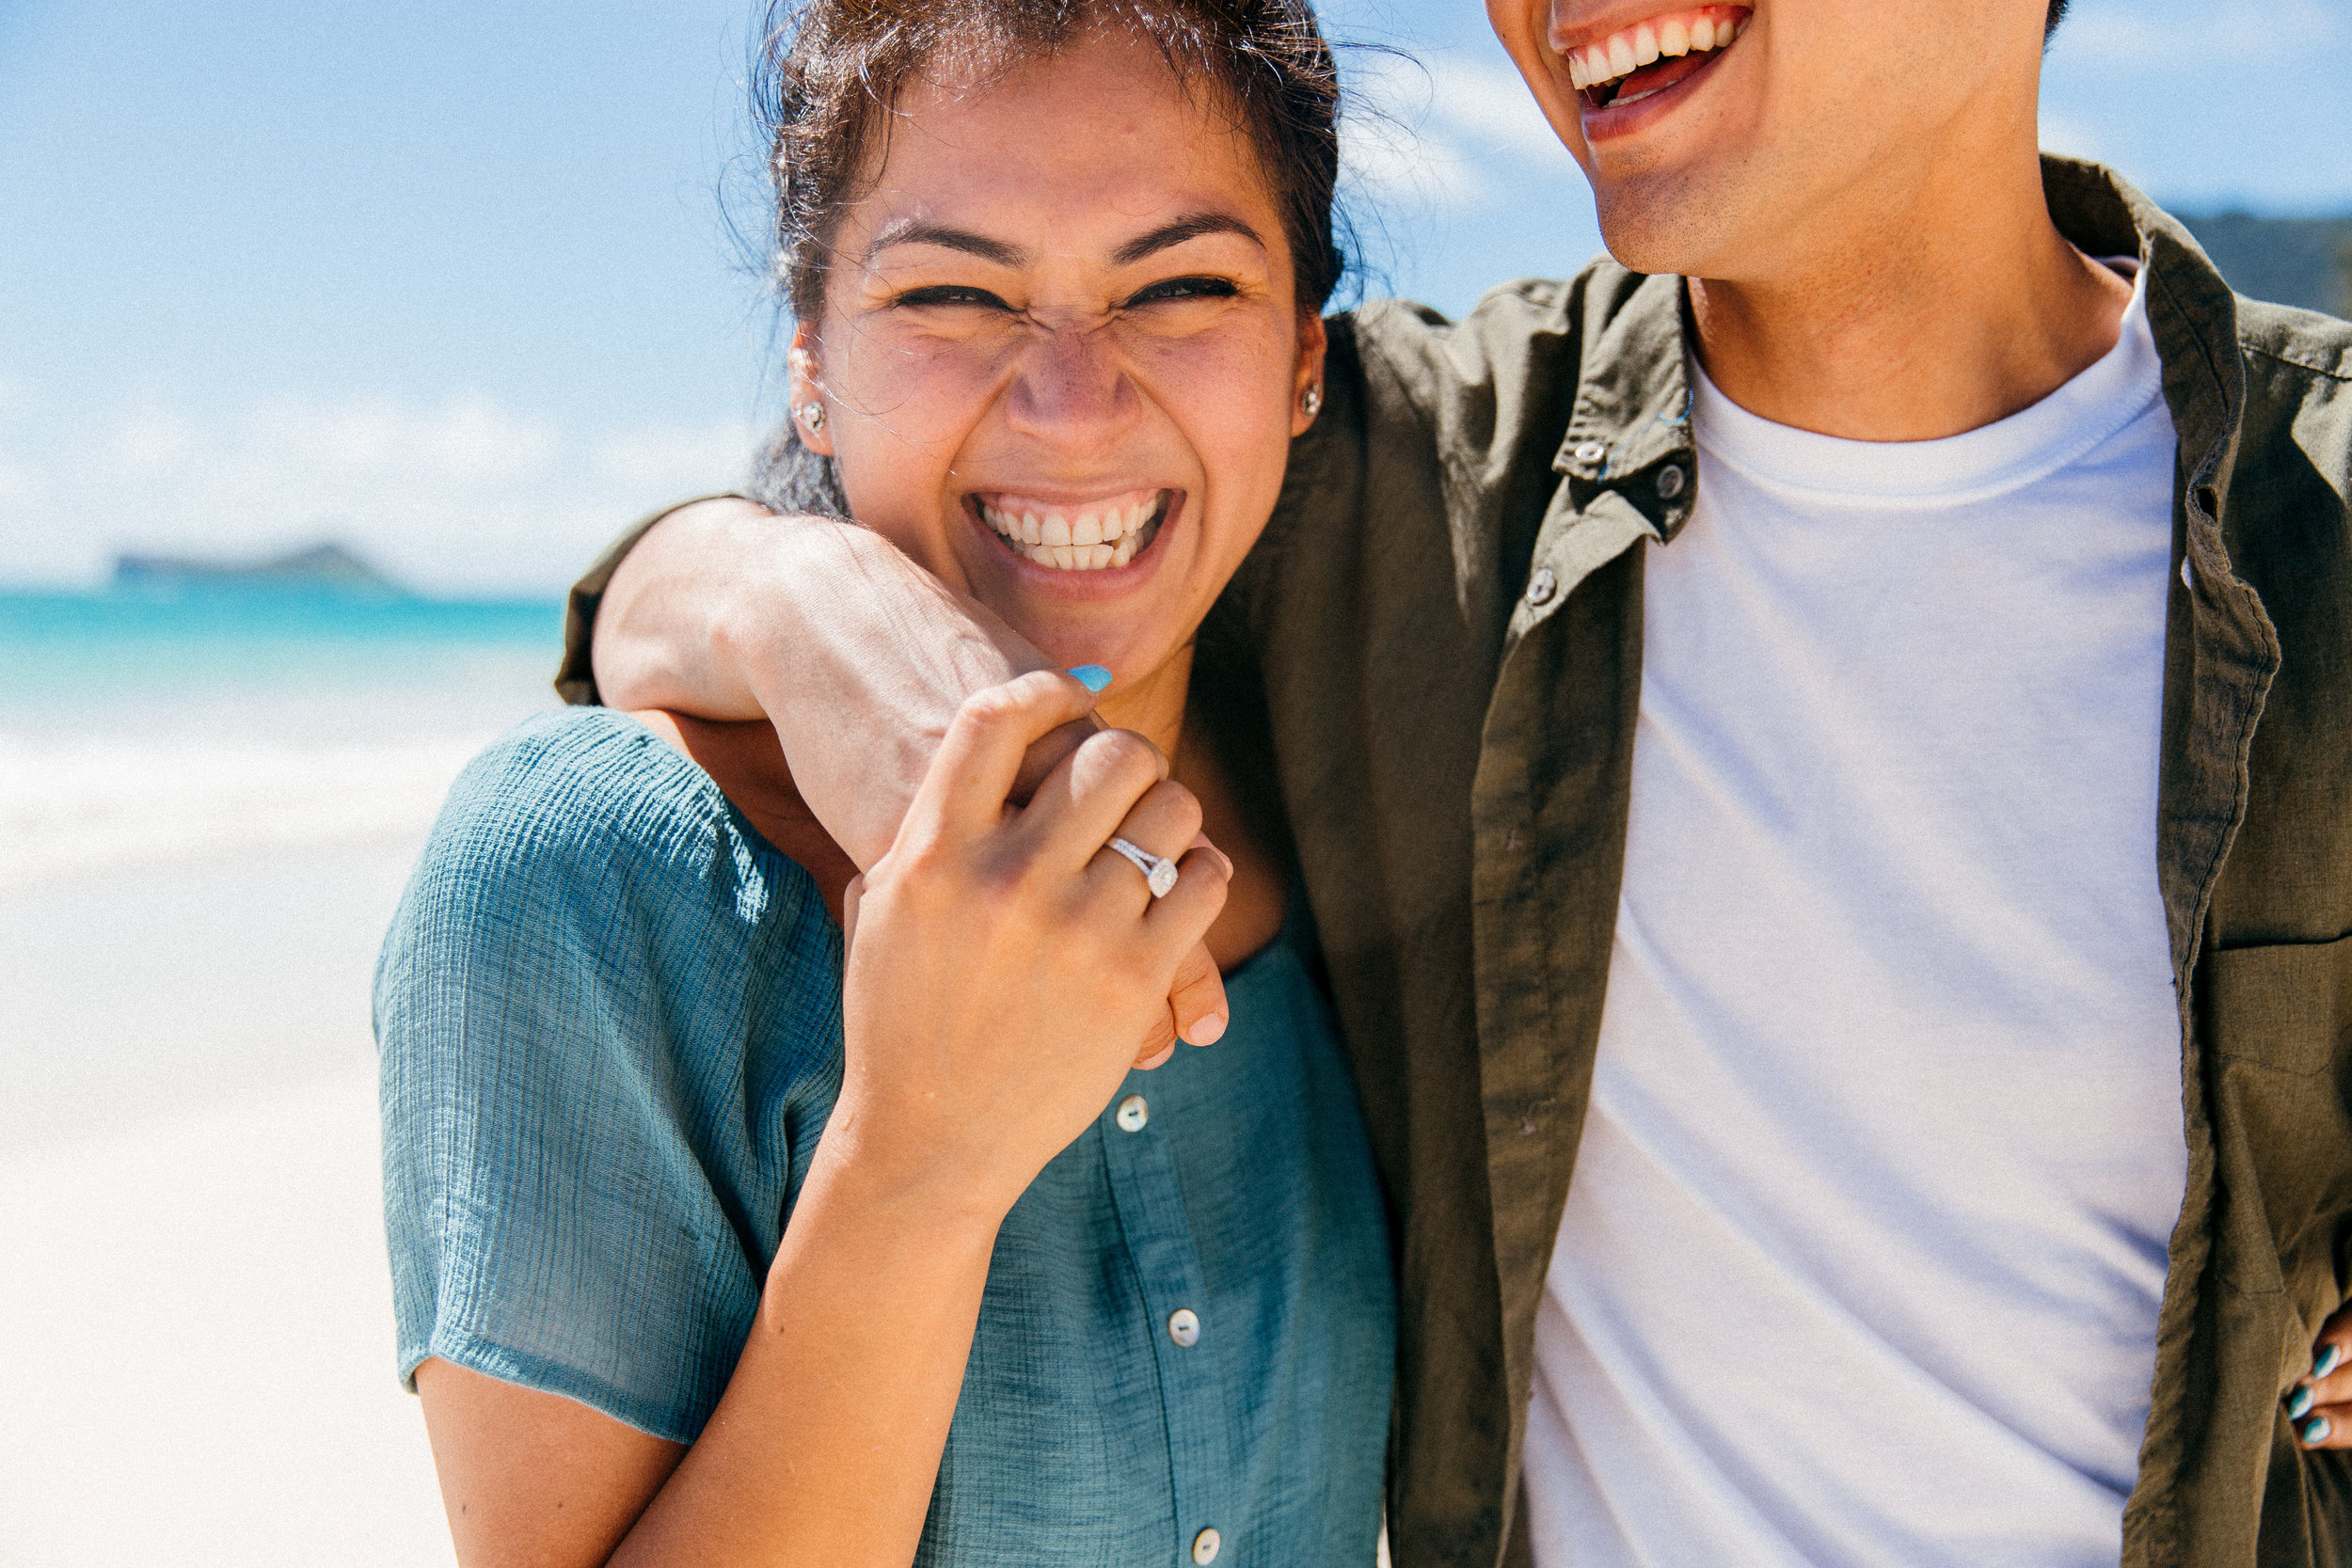 Daniel proposed to Sinday at Waimanalo Beach on July 4th weekend near Honolulu, Hawaii at the base of the Koolau Mountain Range.